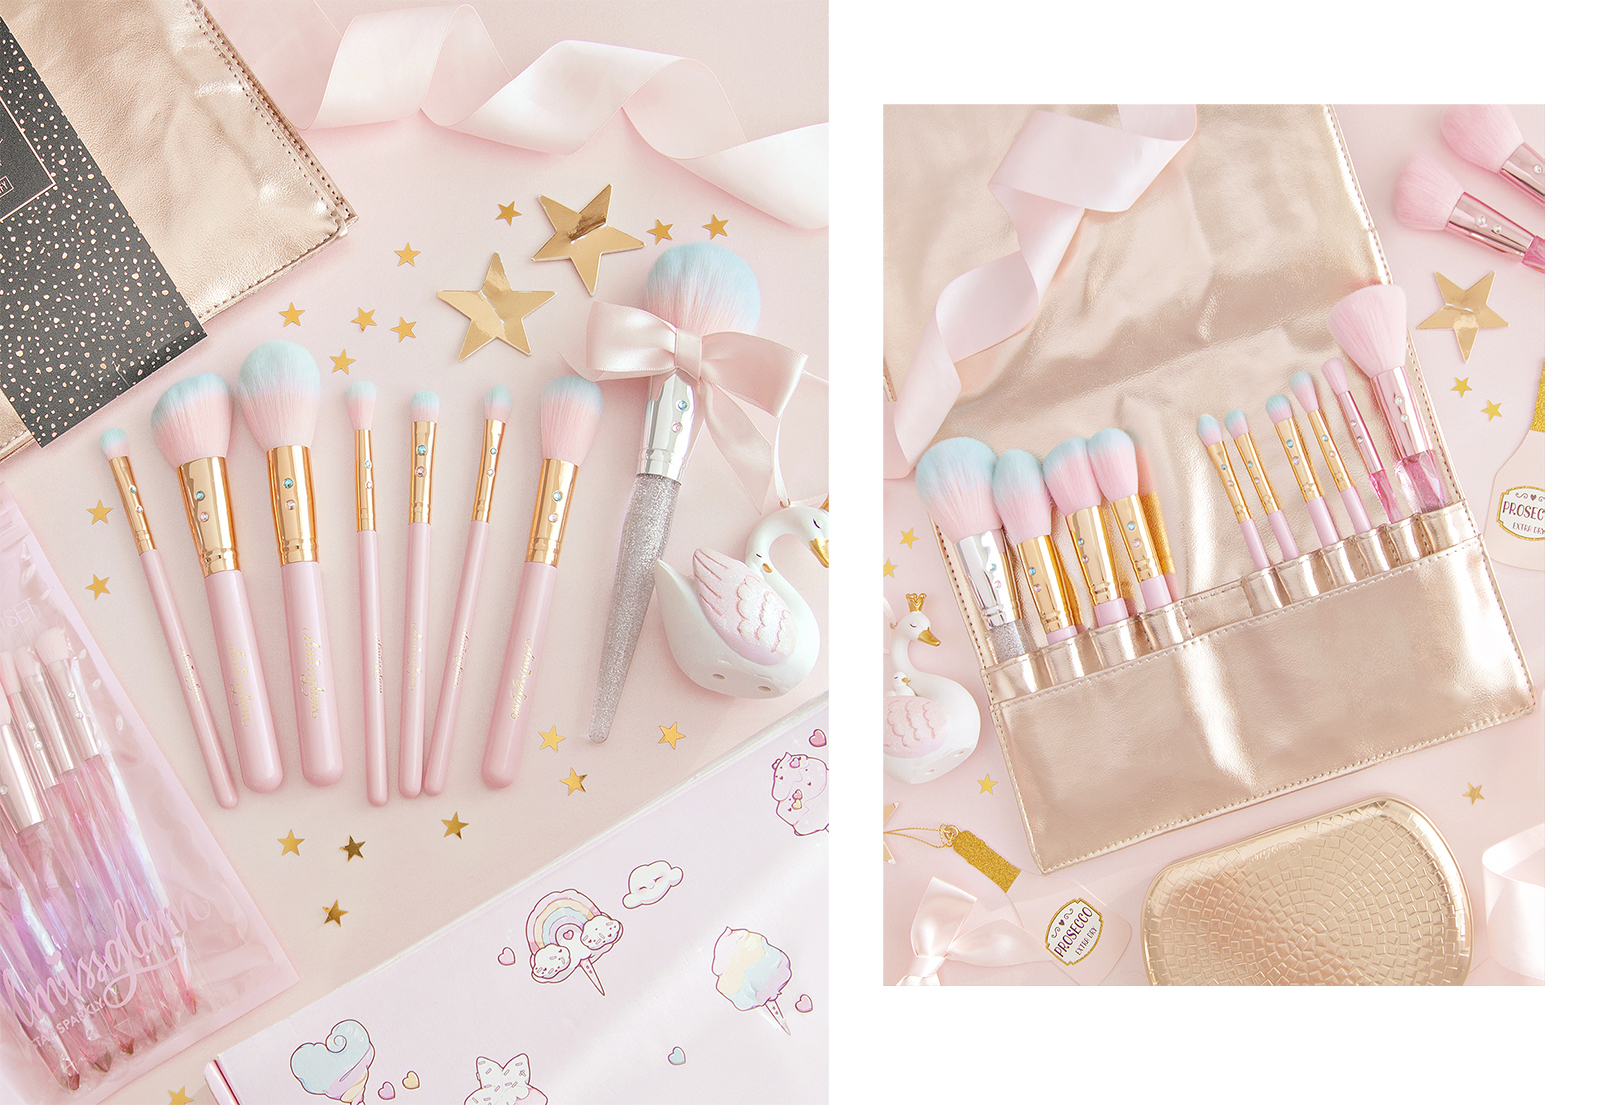 Pink makeup brushes from the brand SlMissGlam